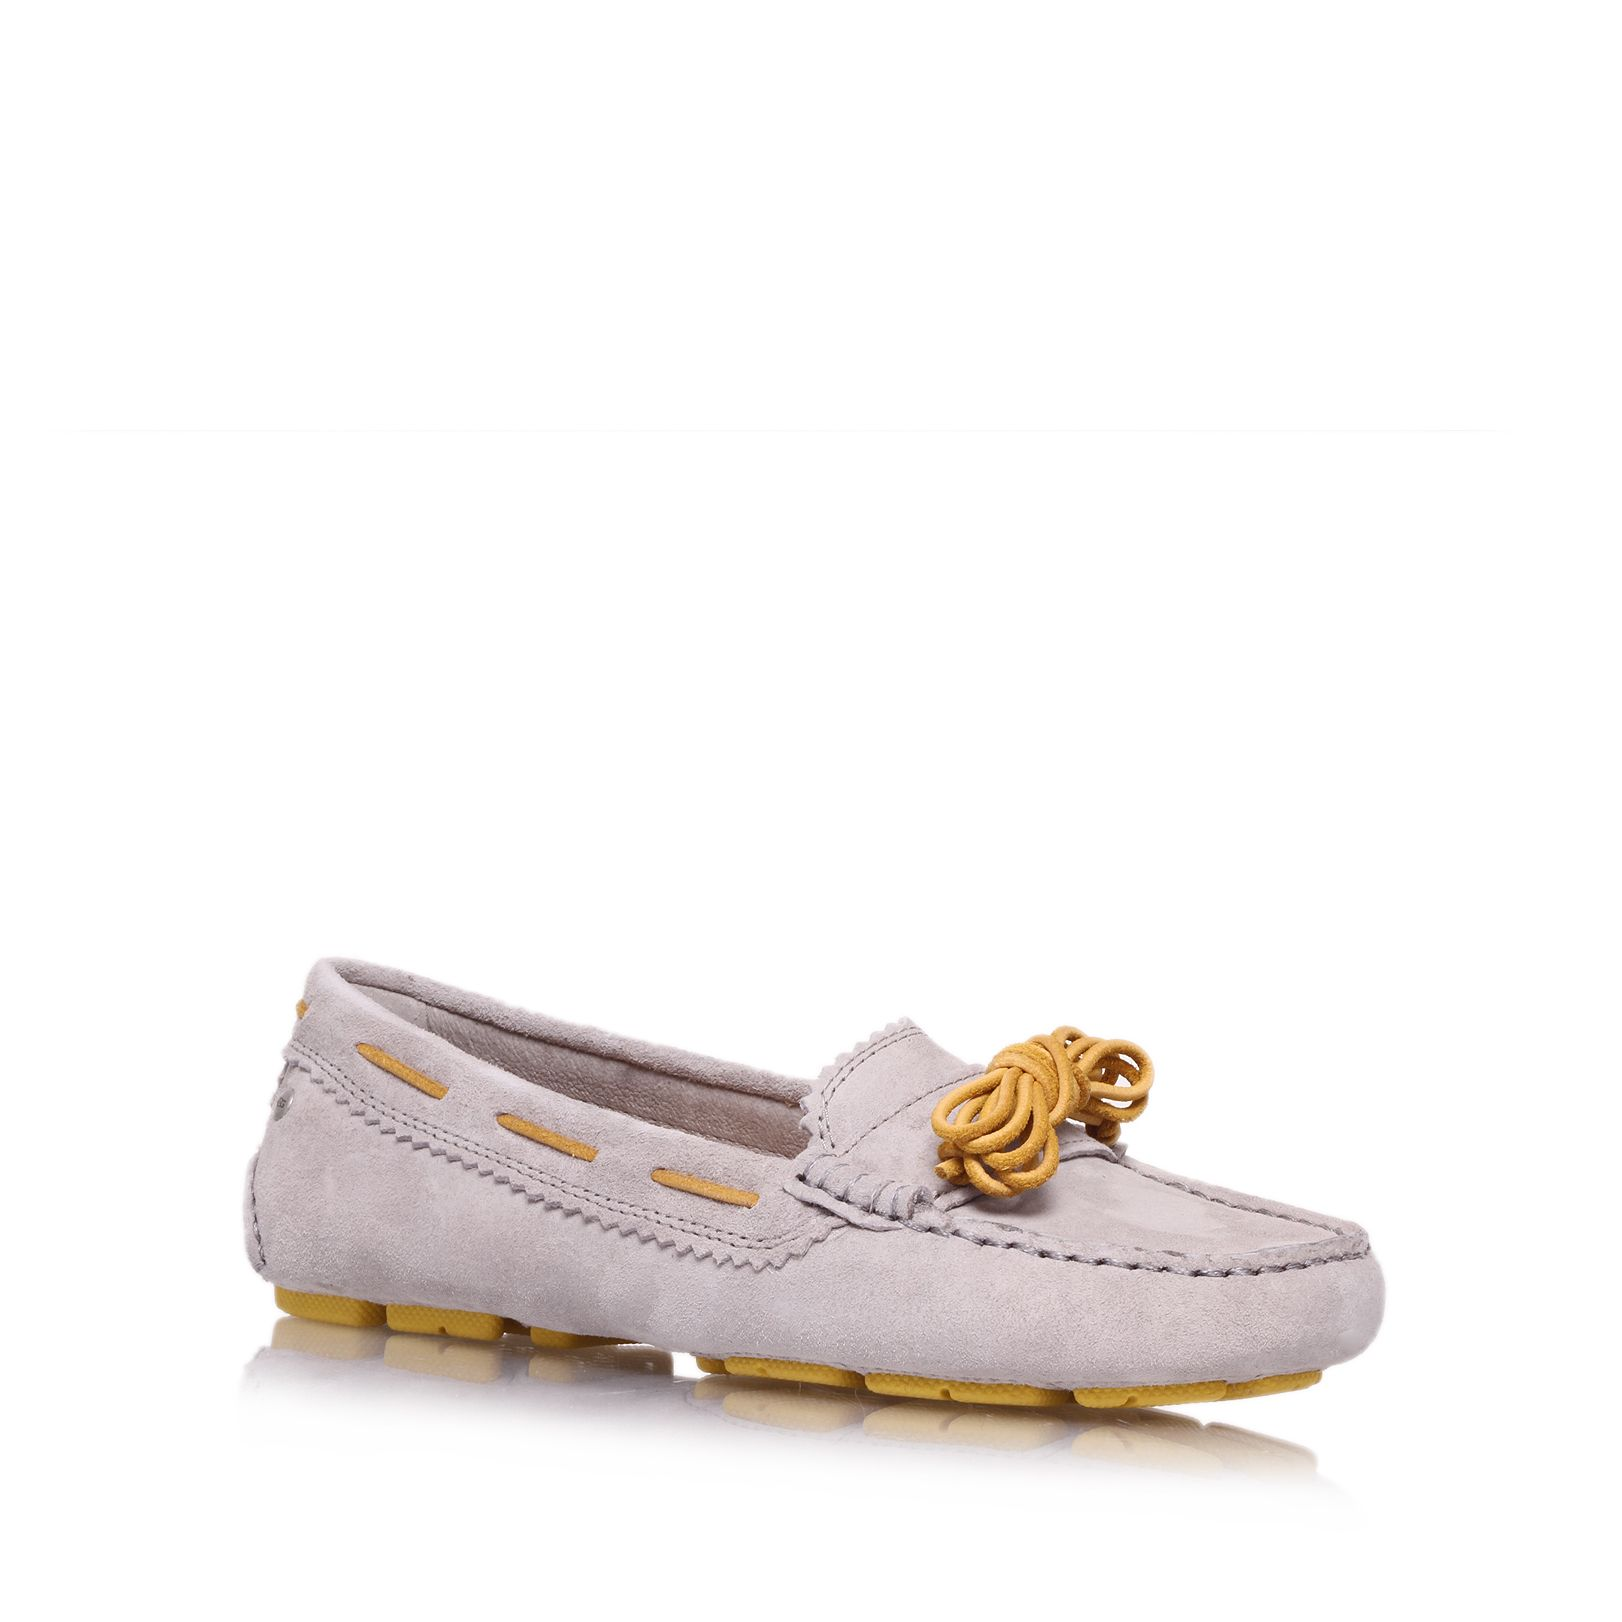 Meena fur lined moccasin slipper